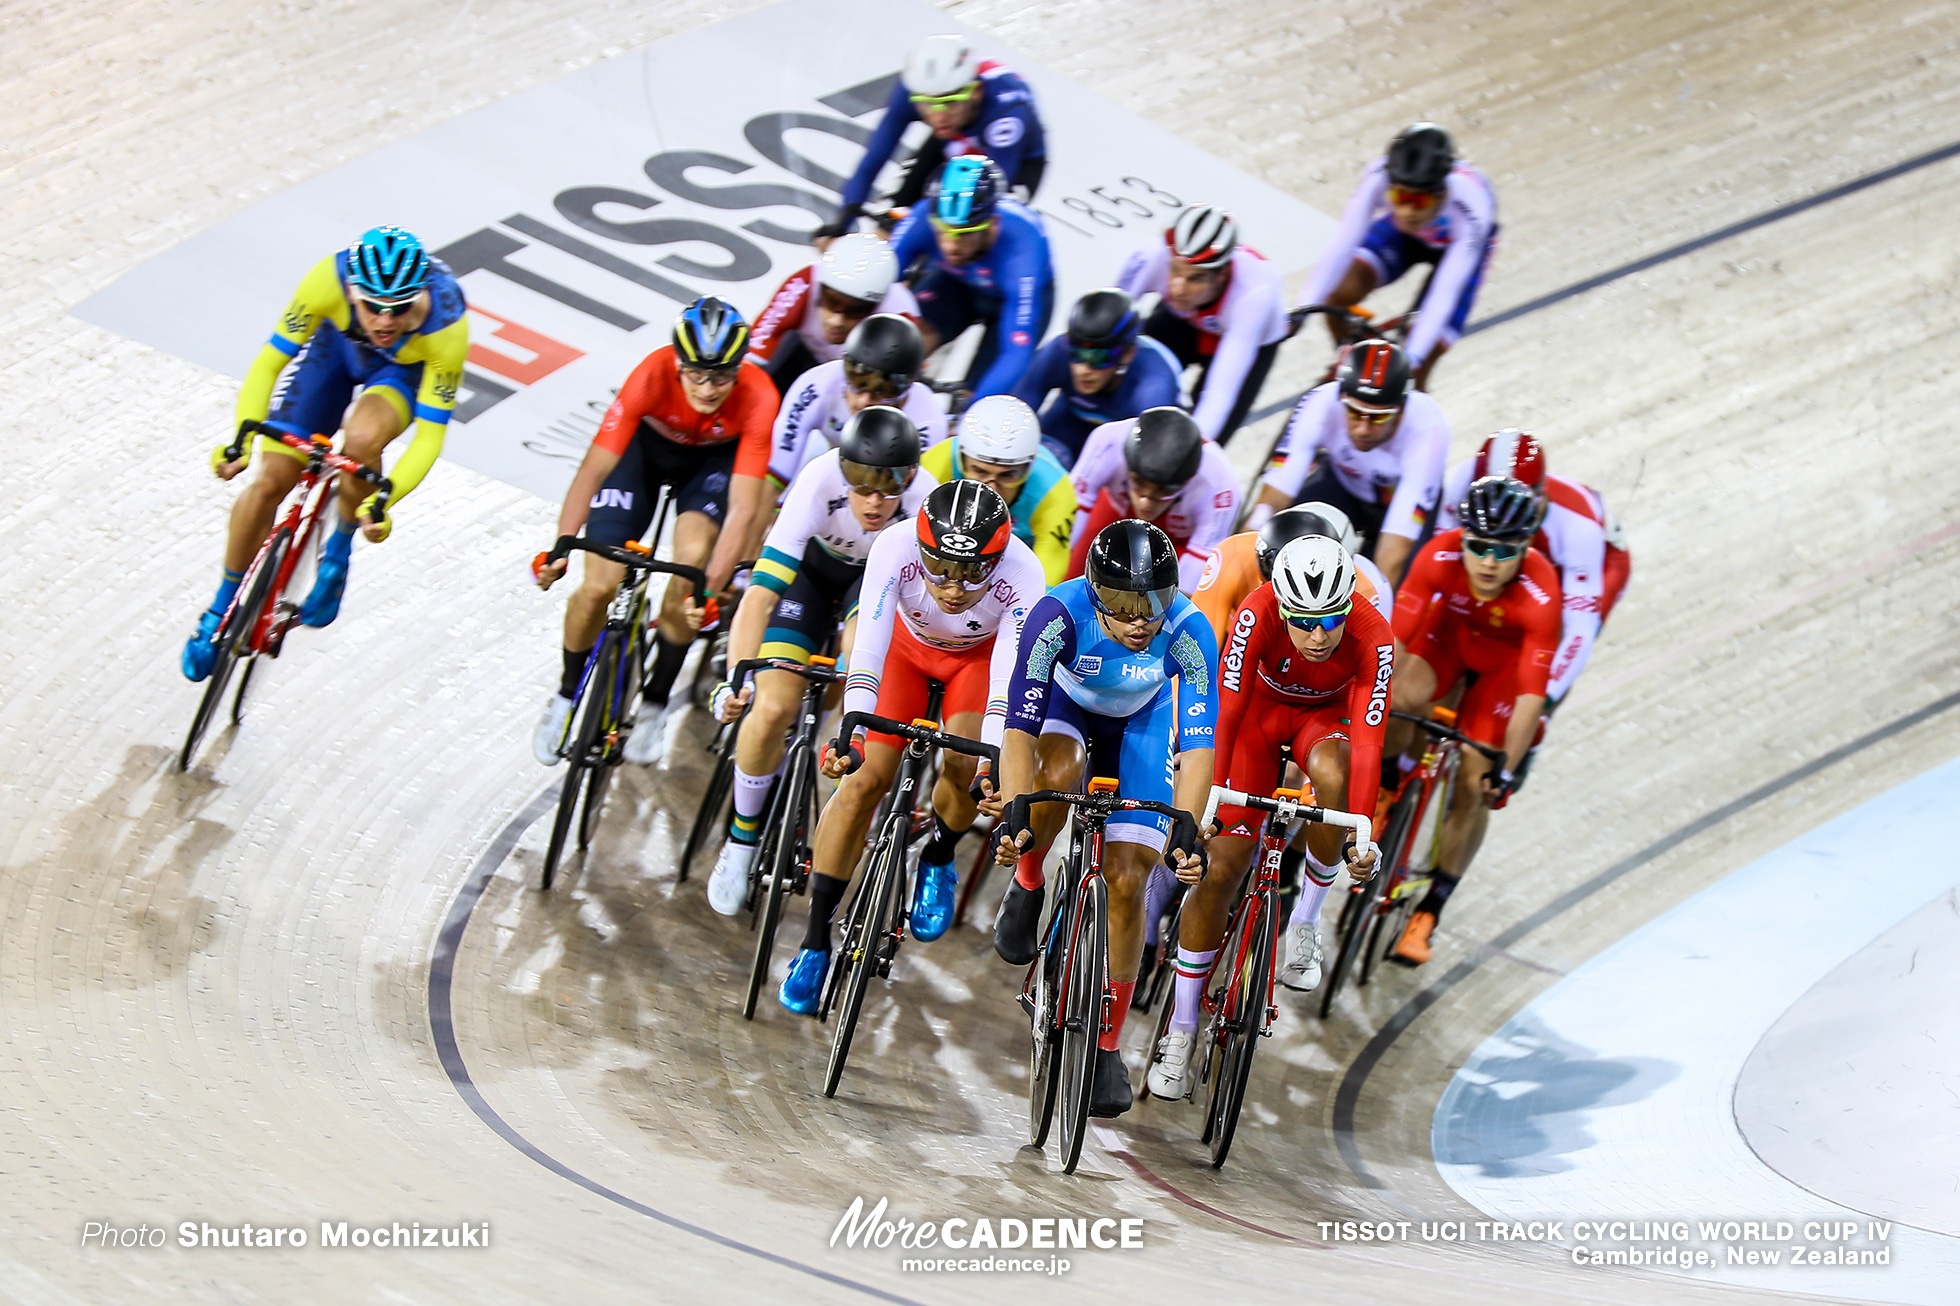 Elimination / Men's Omnium / TISSOT UCI TRACK CYCLING WORLD CUP IV, Cambridge, New Zealand